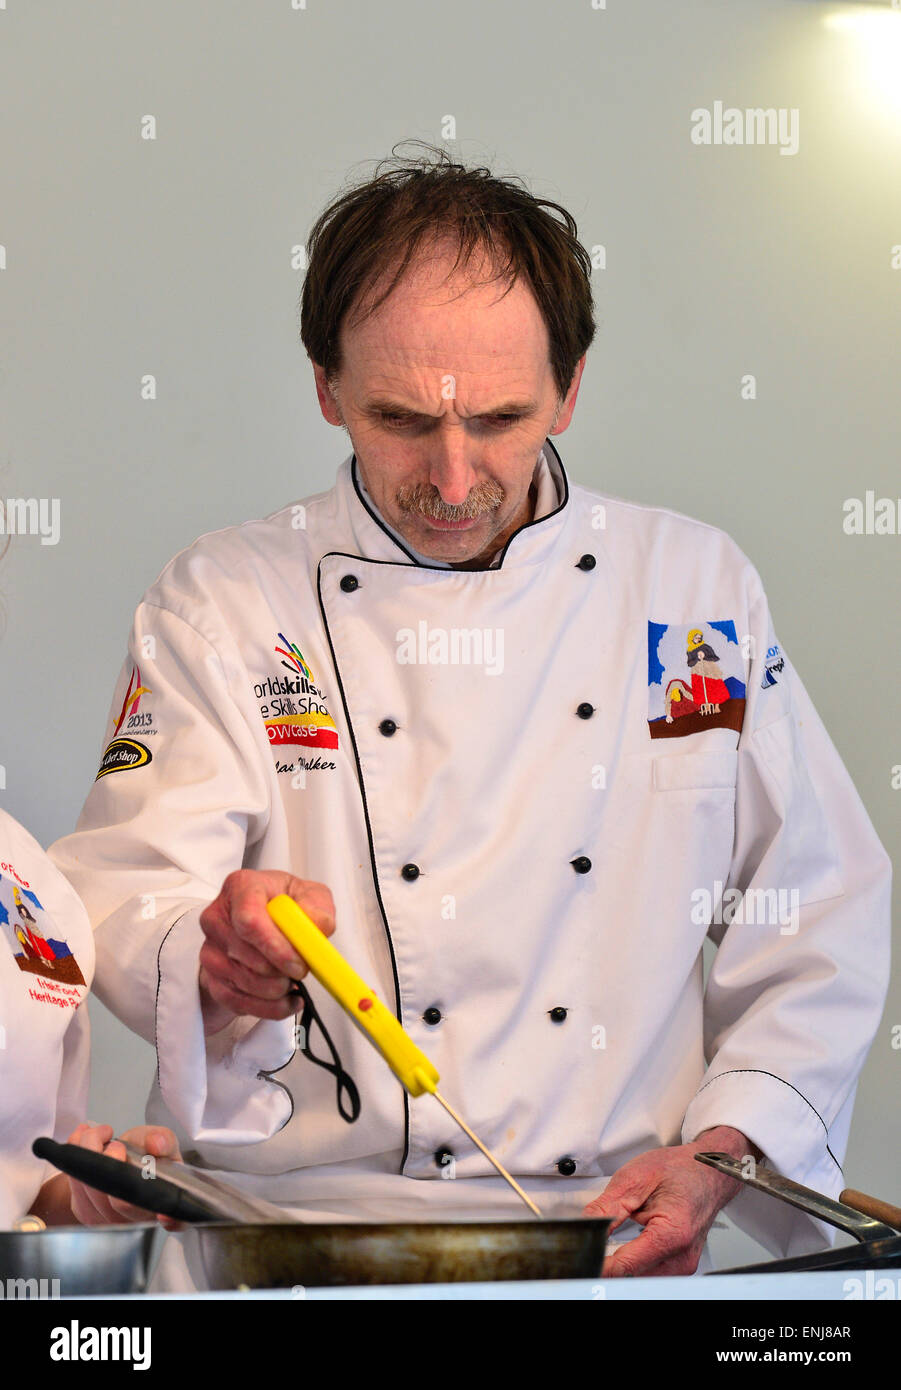 Chef using digital Folding Probe Thermometer to check temperature of hot food at cookery demonstration in Londonderry - Stock Image